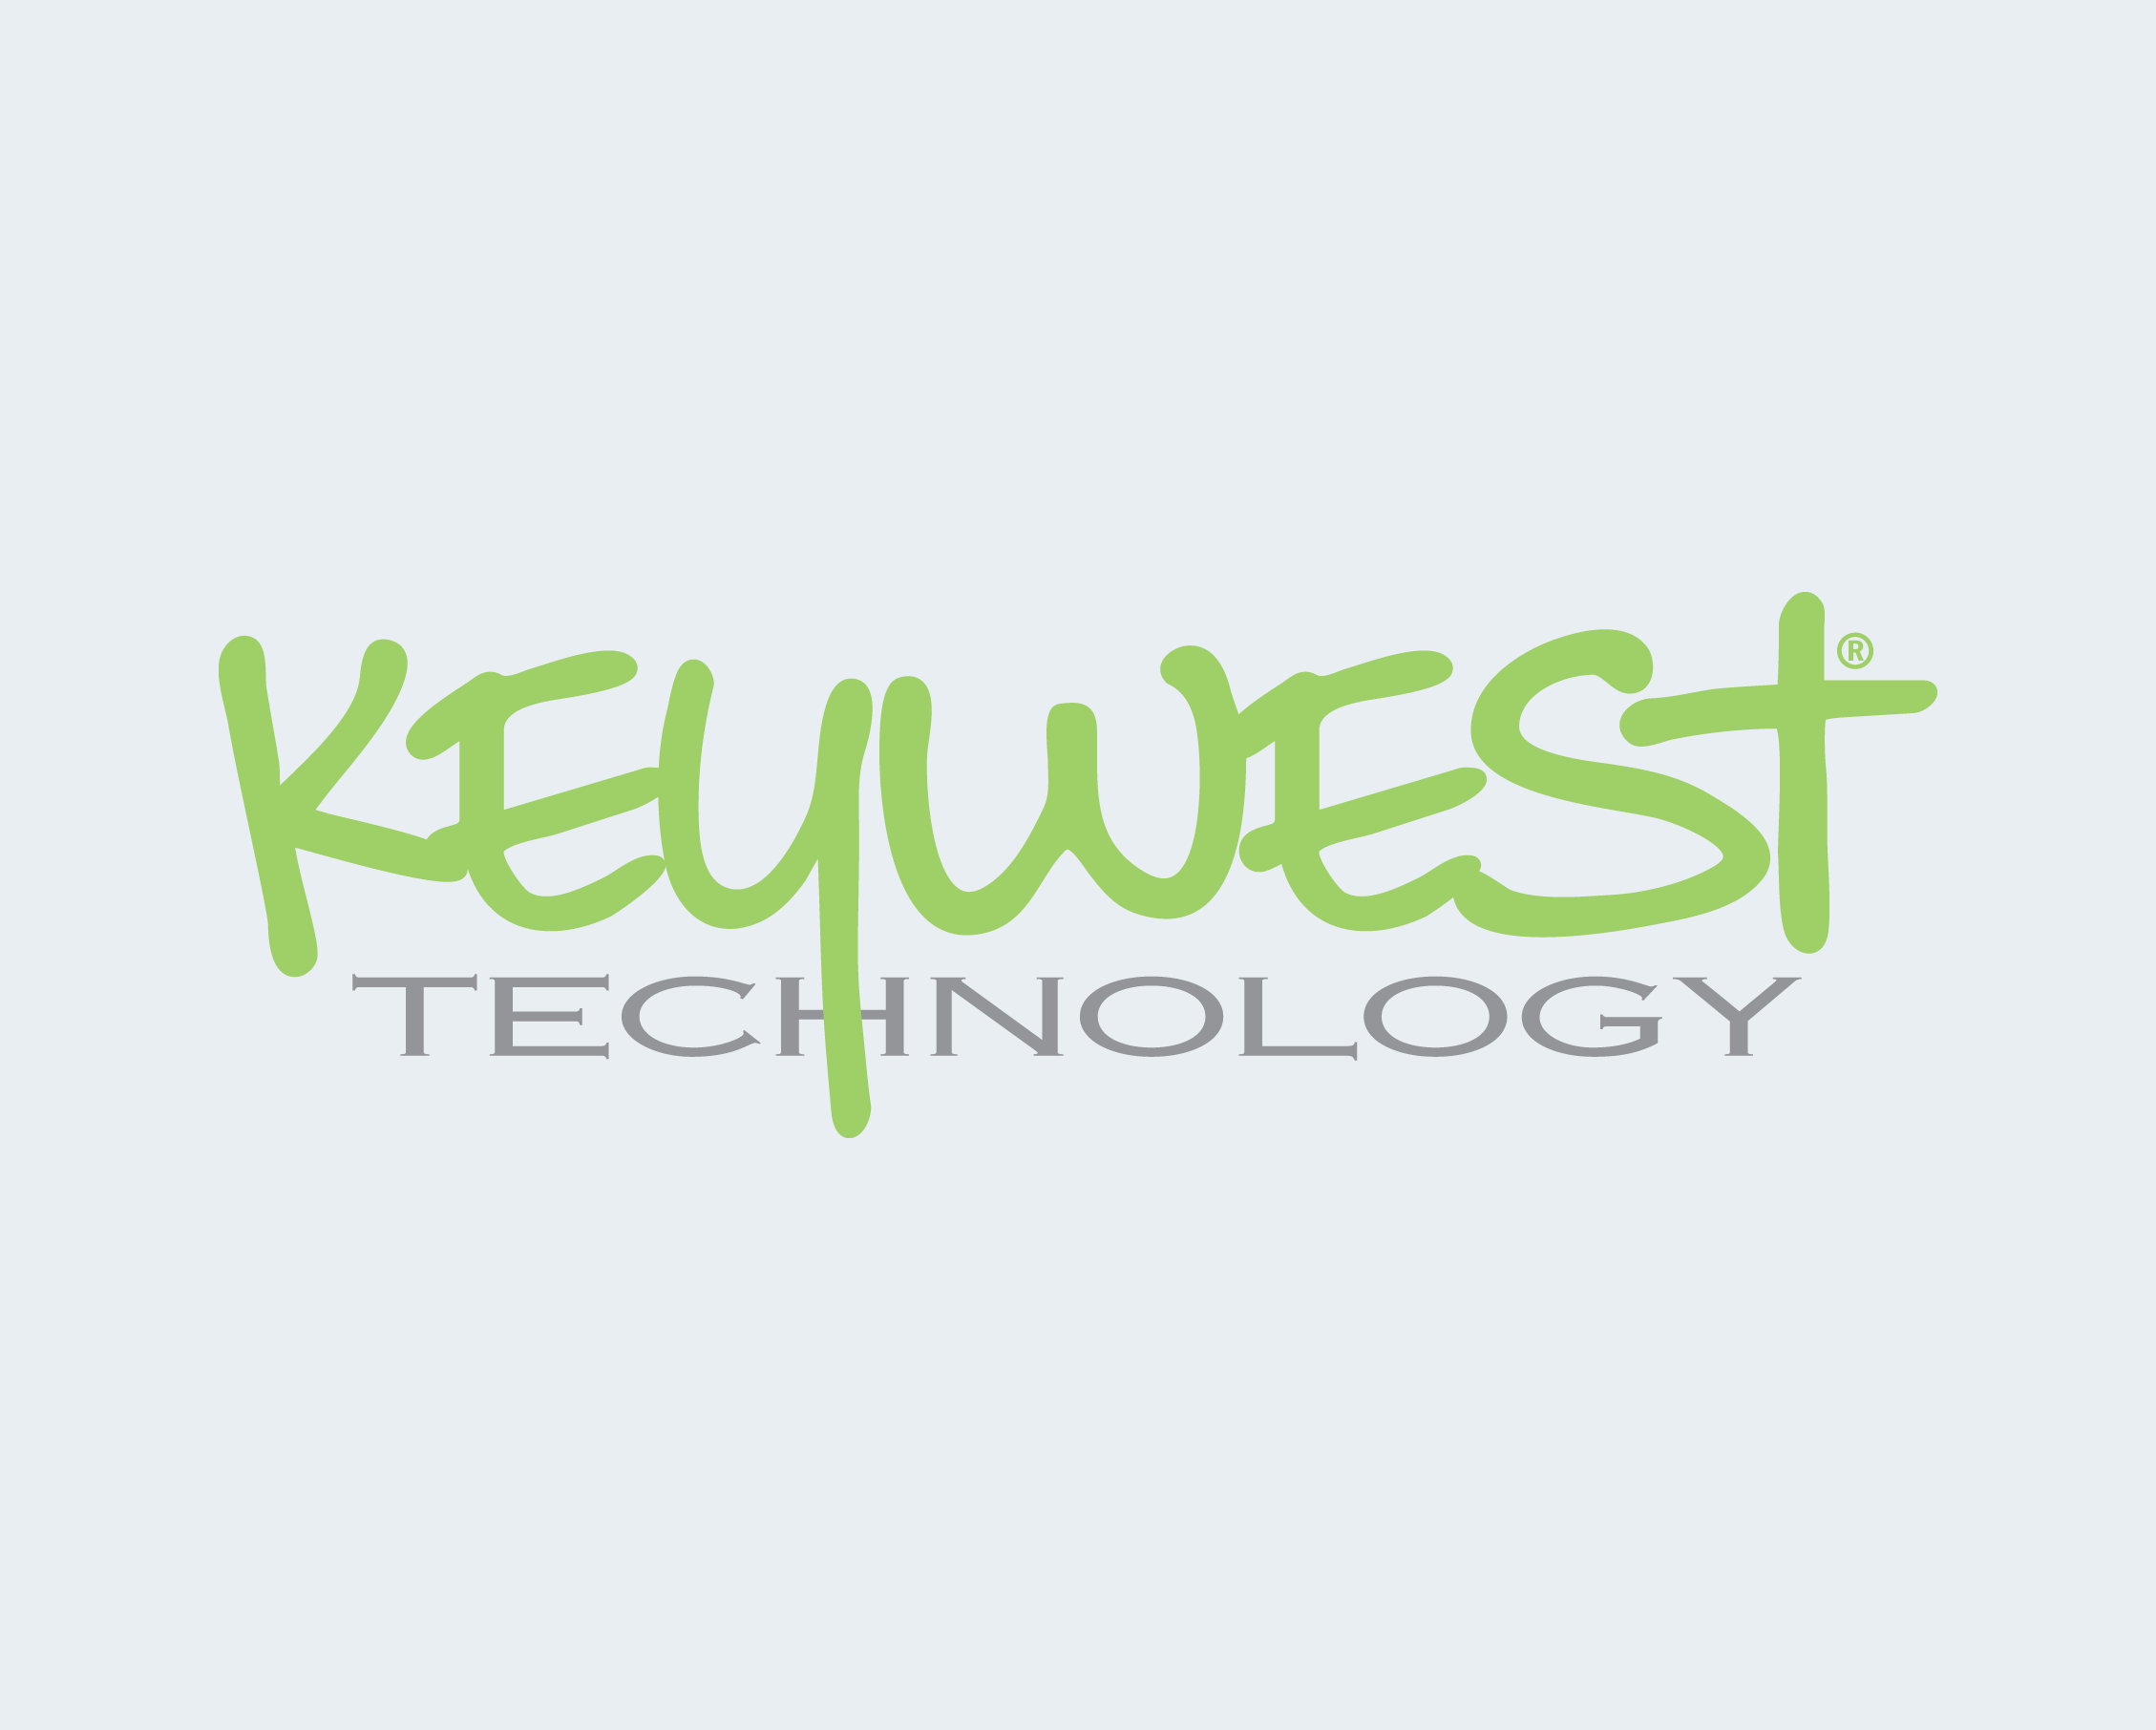 Ad Astra Announces Partnership with Keywest Technology